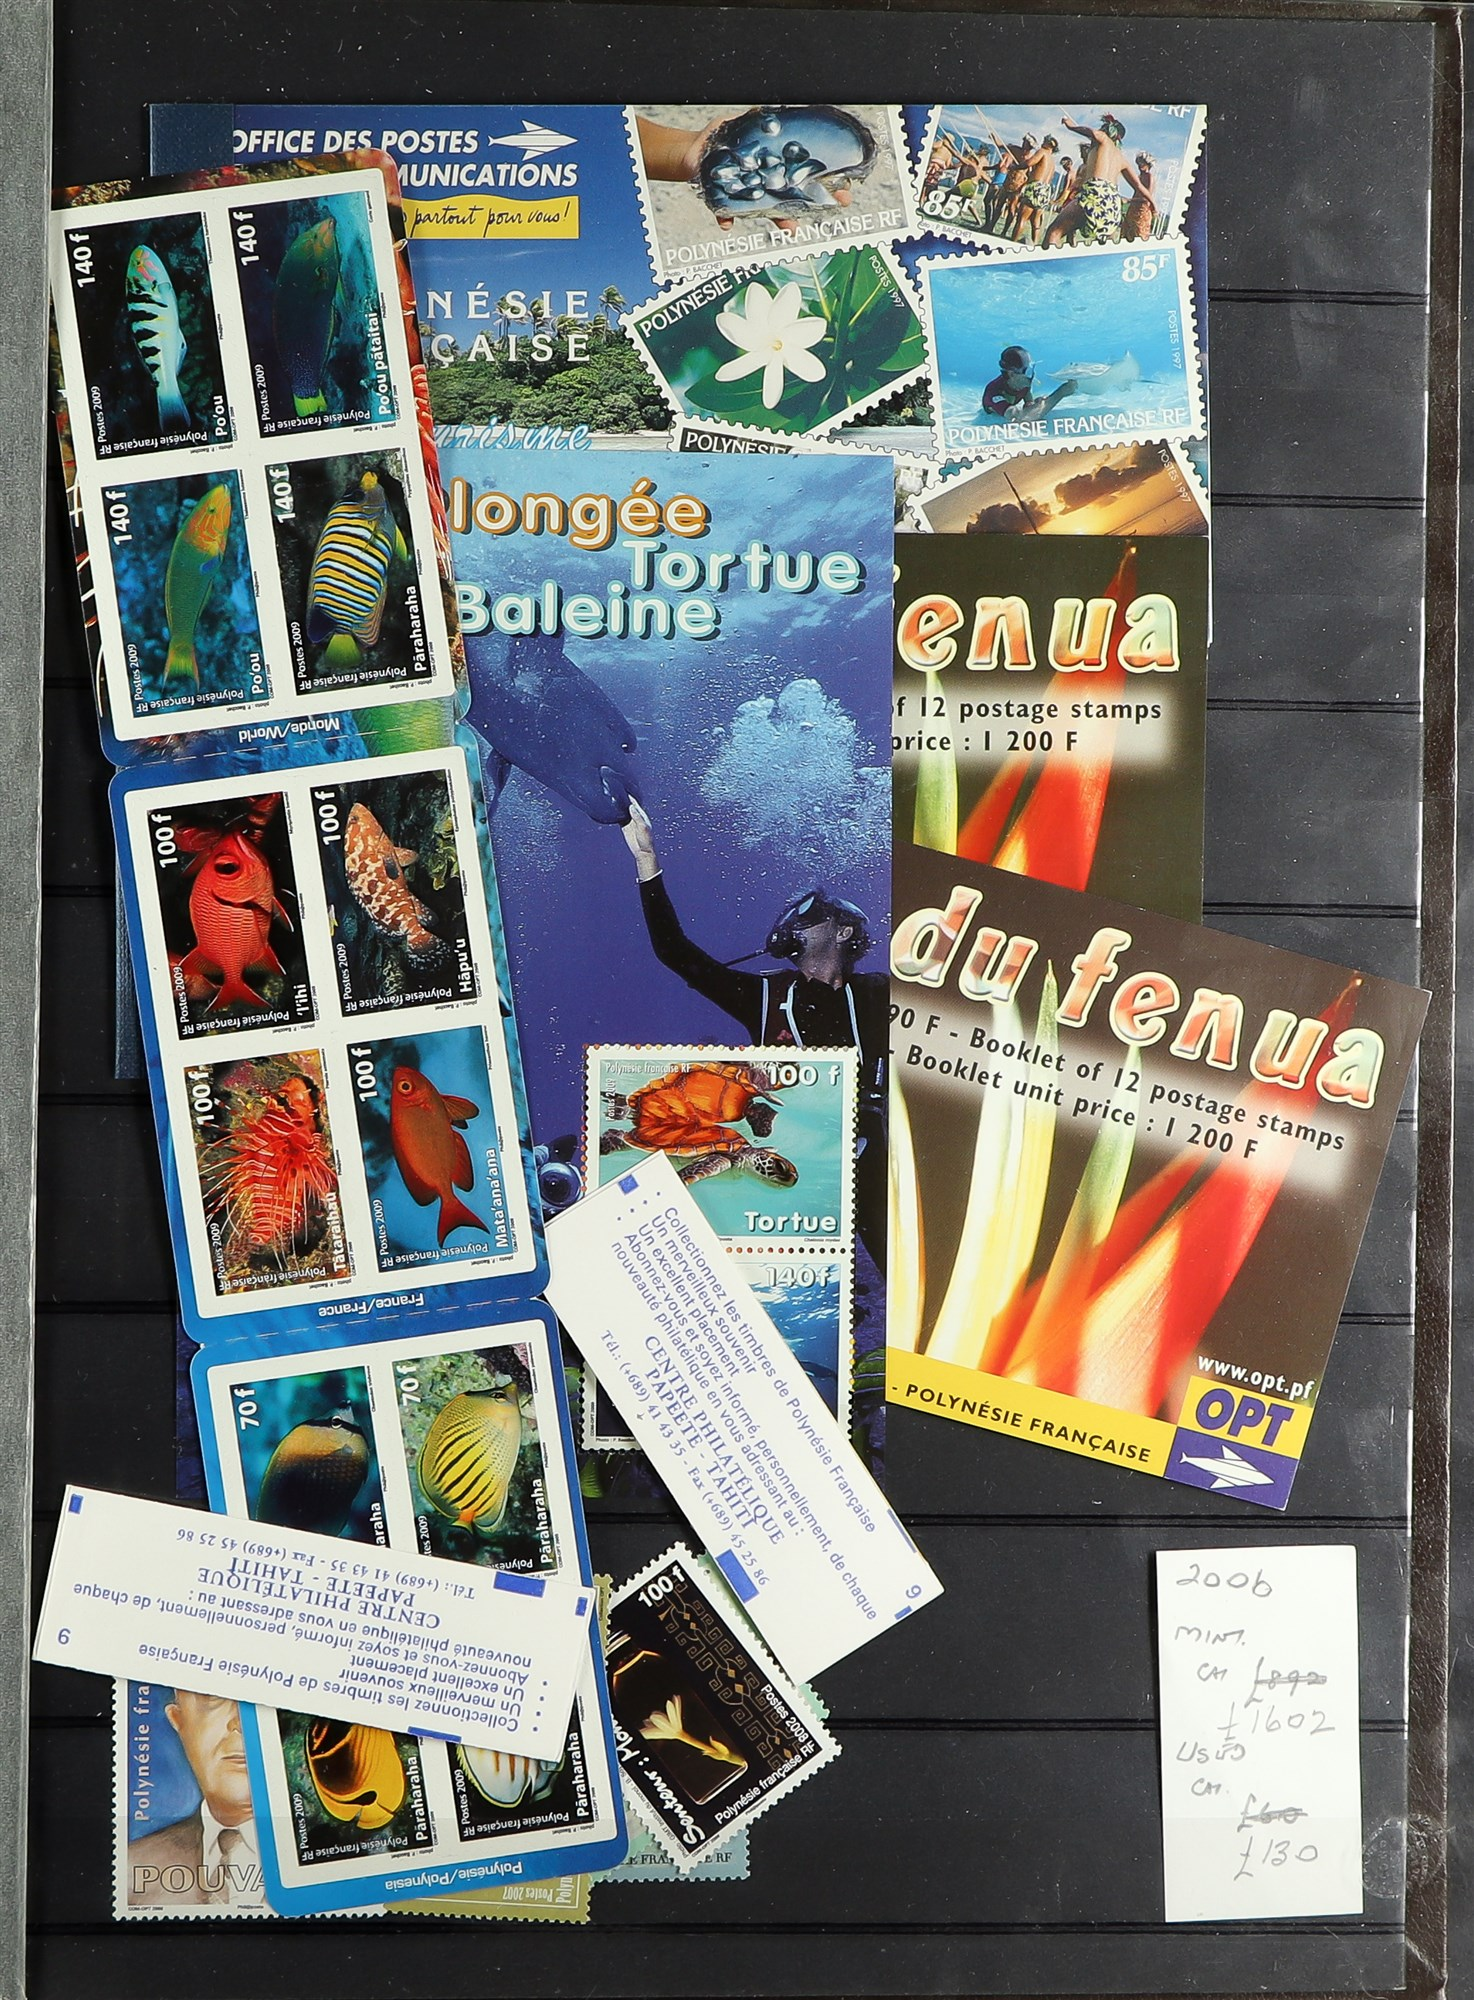 FRENCH COLONIES POLYNESIA 1948-2009 mint, largely never hinged collection, incl. few imperfs, - Image 7 of 9